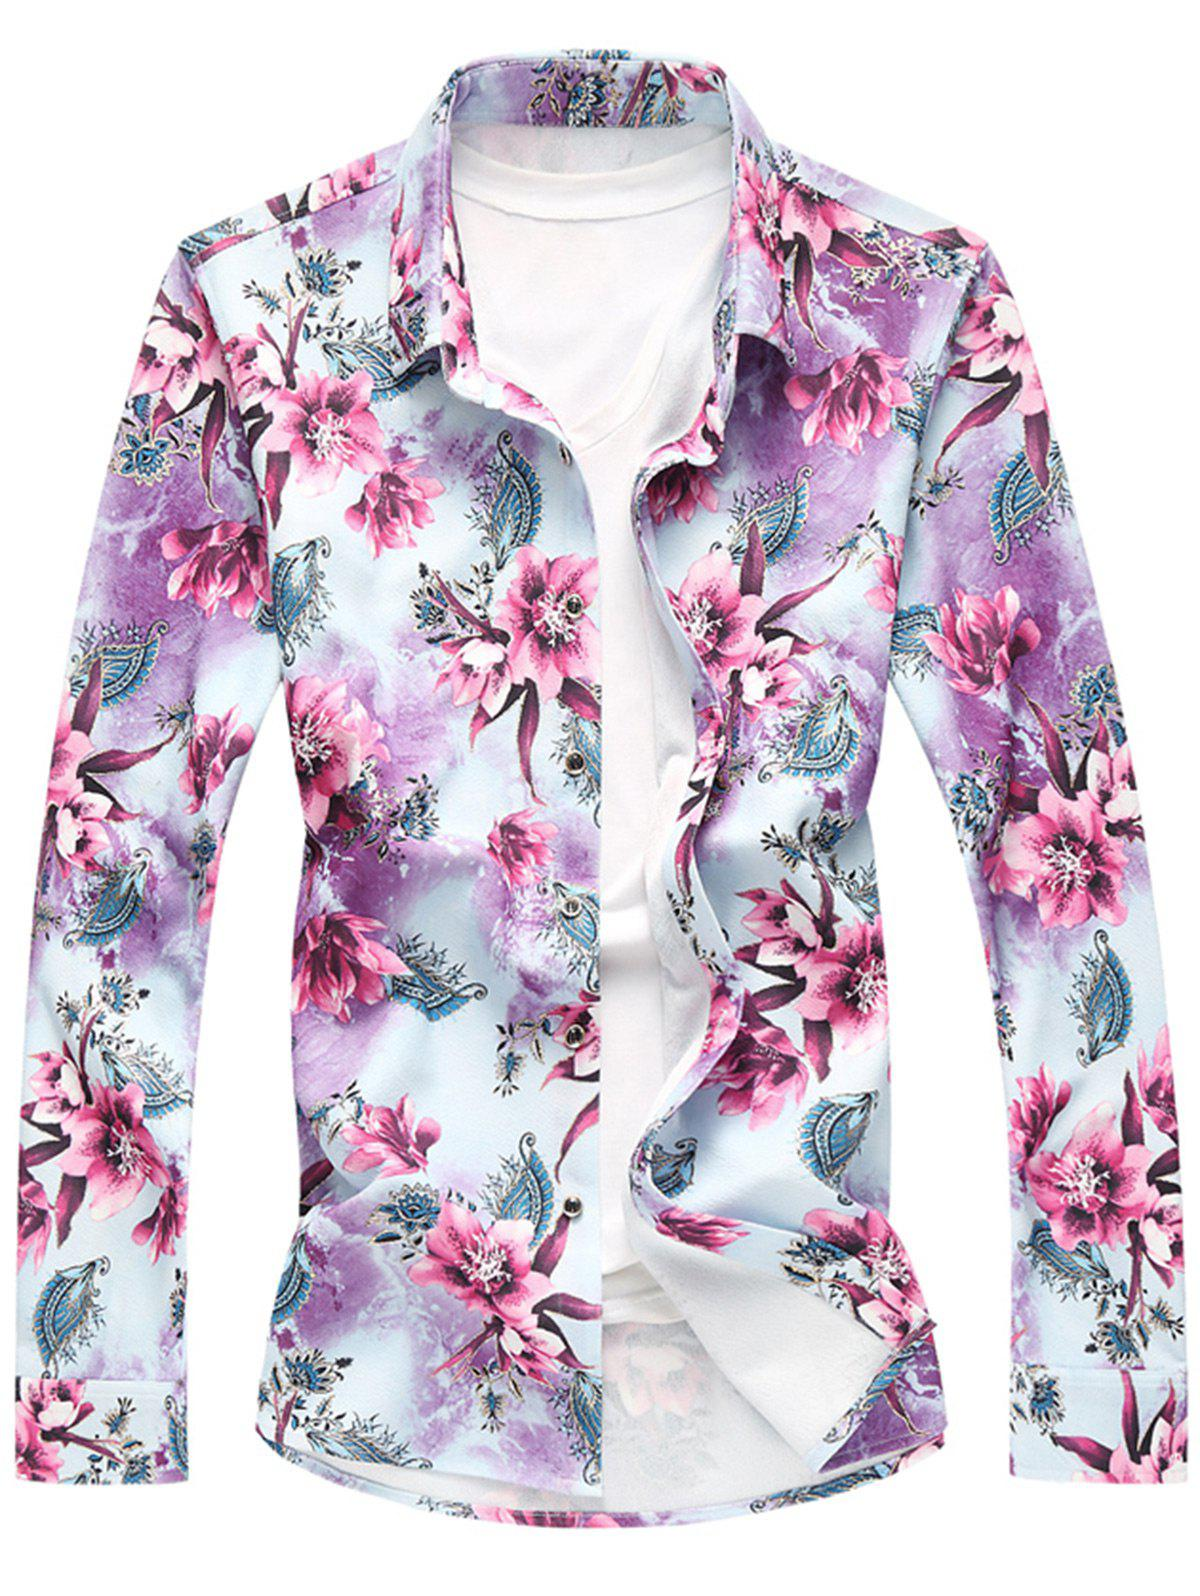 Shop Long Sleeve Plus Size Floral Shirt